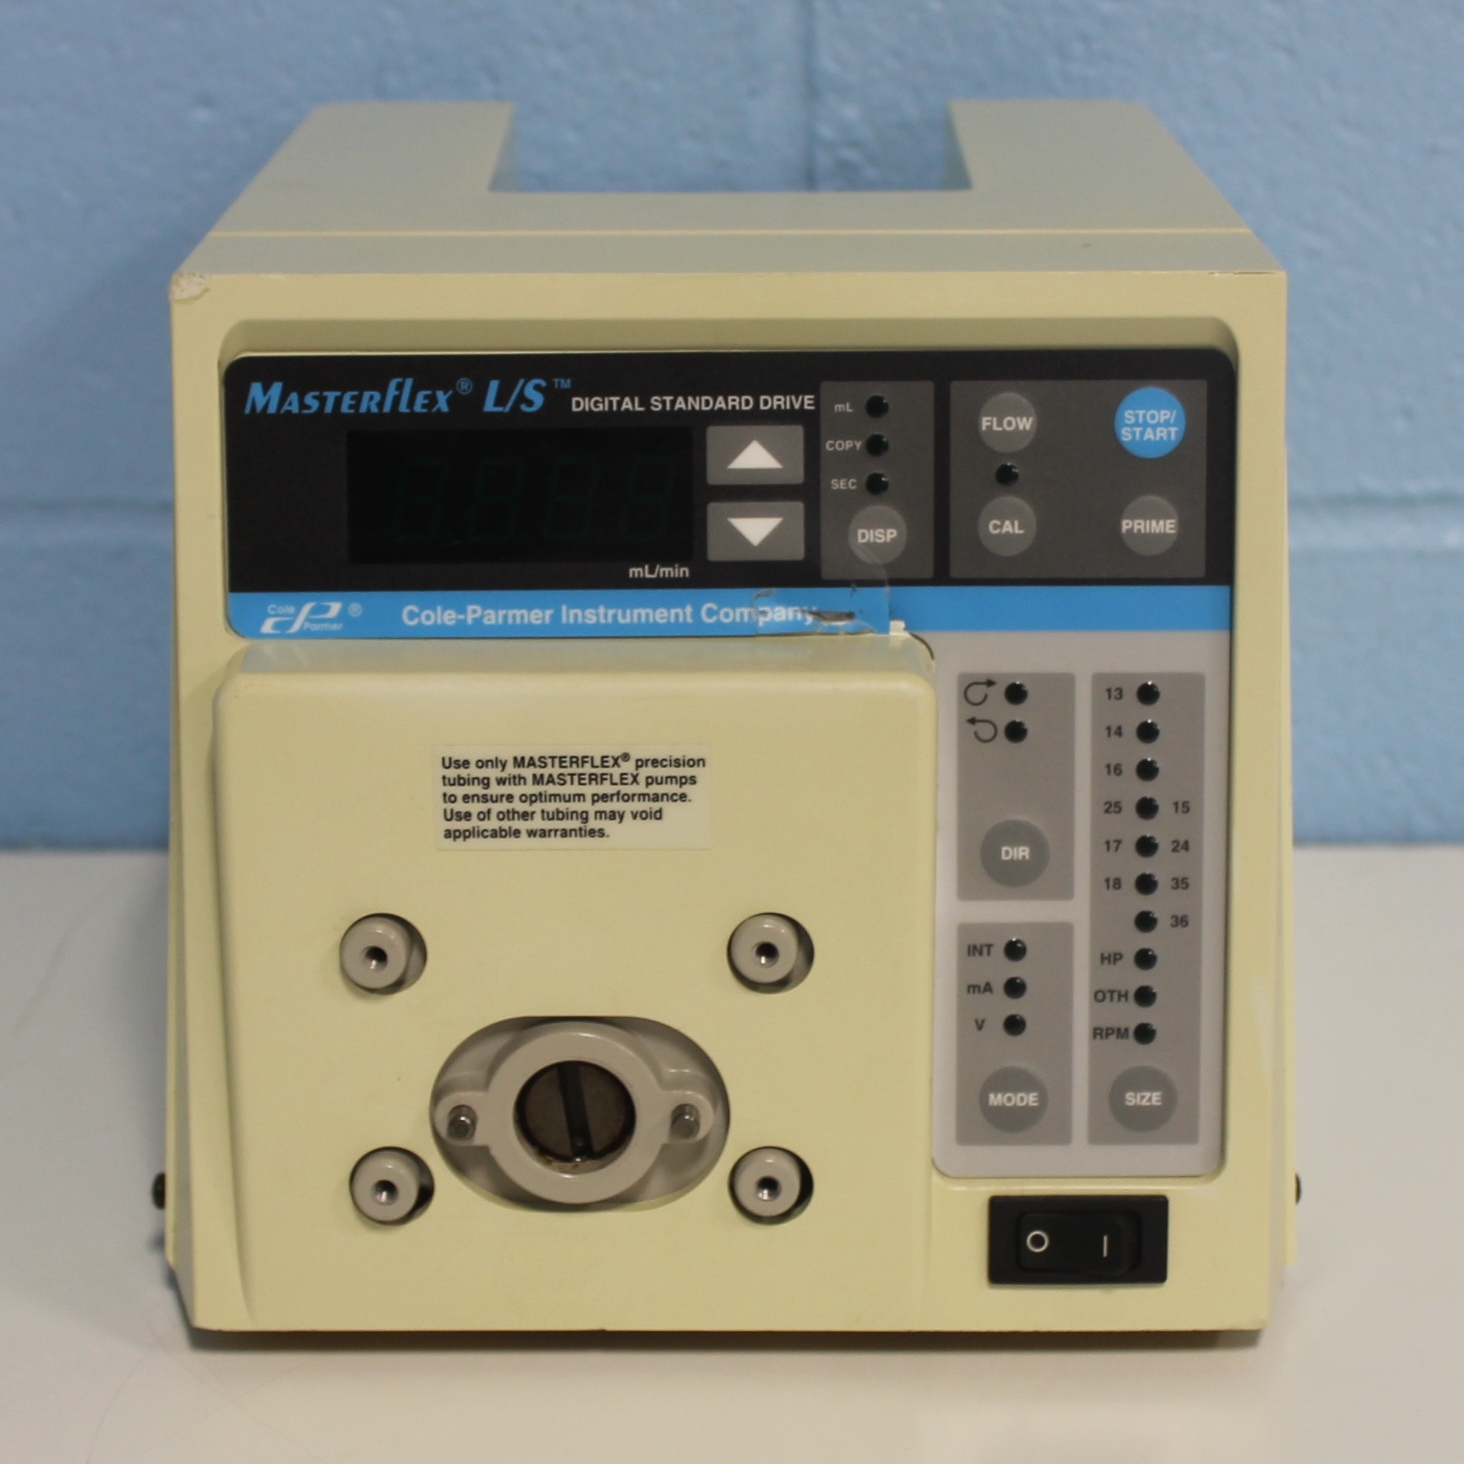 Cole-Parmer Masterflex L/S Digital Standard Drive with Remote Capabilities model 7523-50 Image